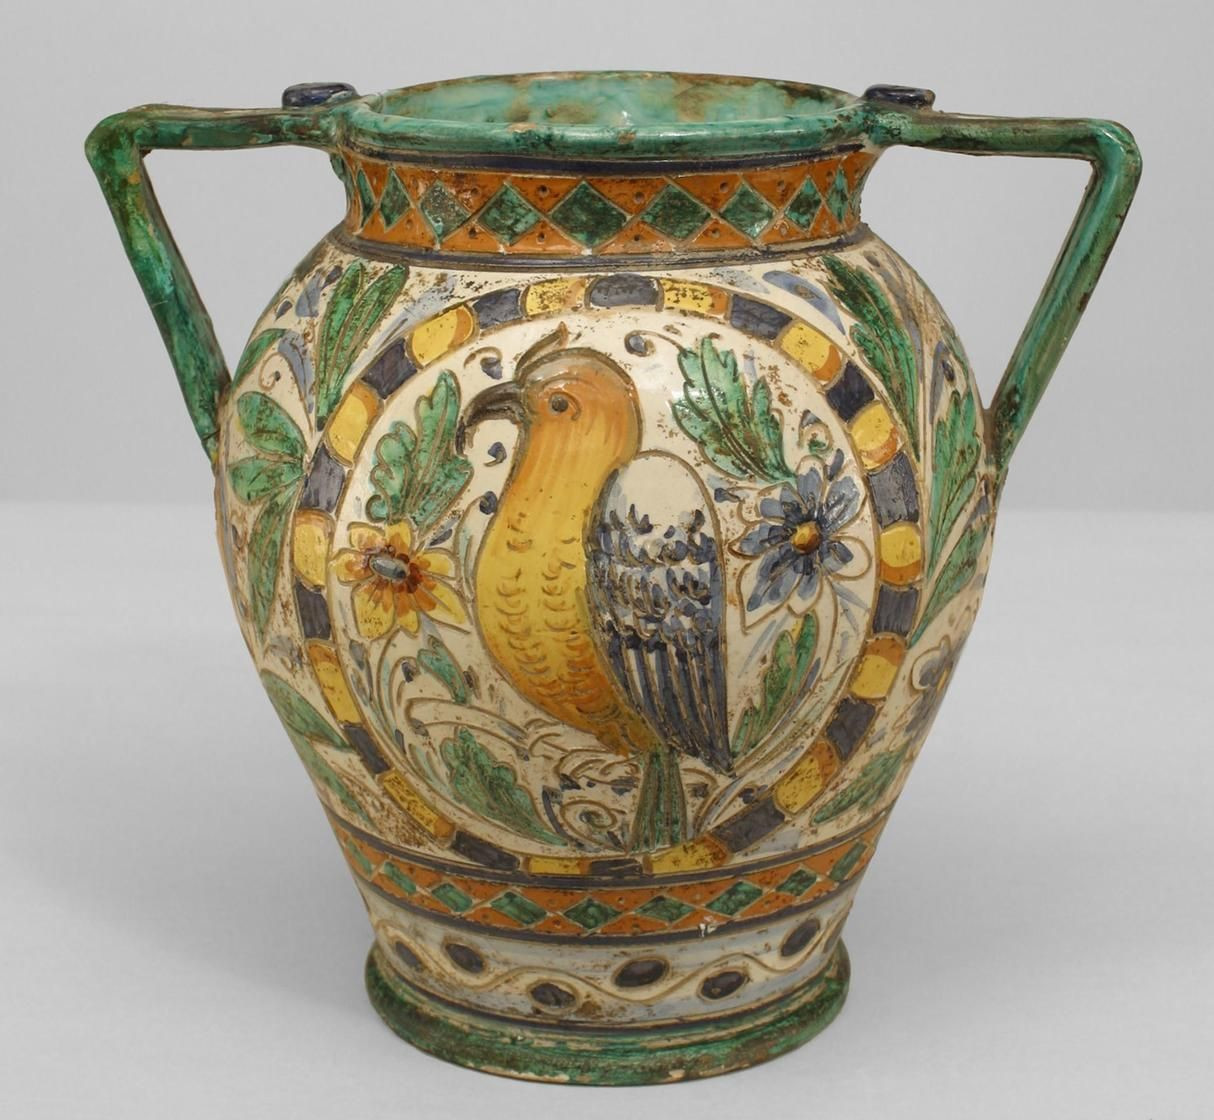 large urn vase of i purchased a large spanish ewer pitcher in similar design recently for i purchased a large spanish ewer pitcher in similar design recently at an amazing estate sale this one is a 19th c majolica italy vase in the neo